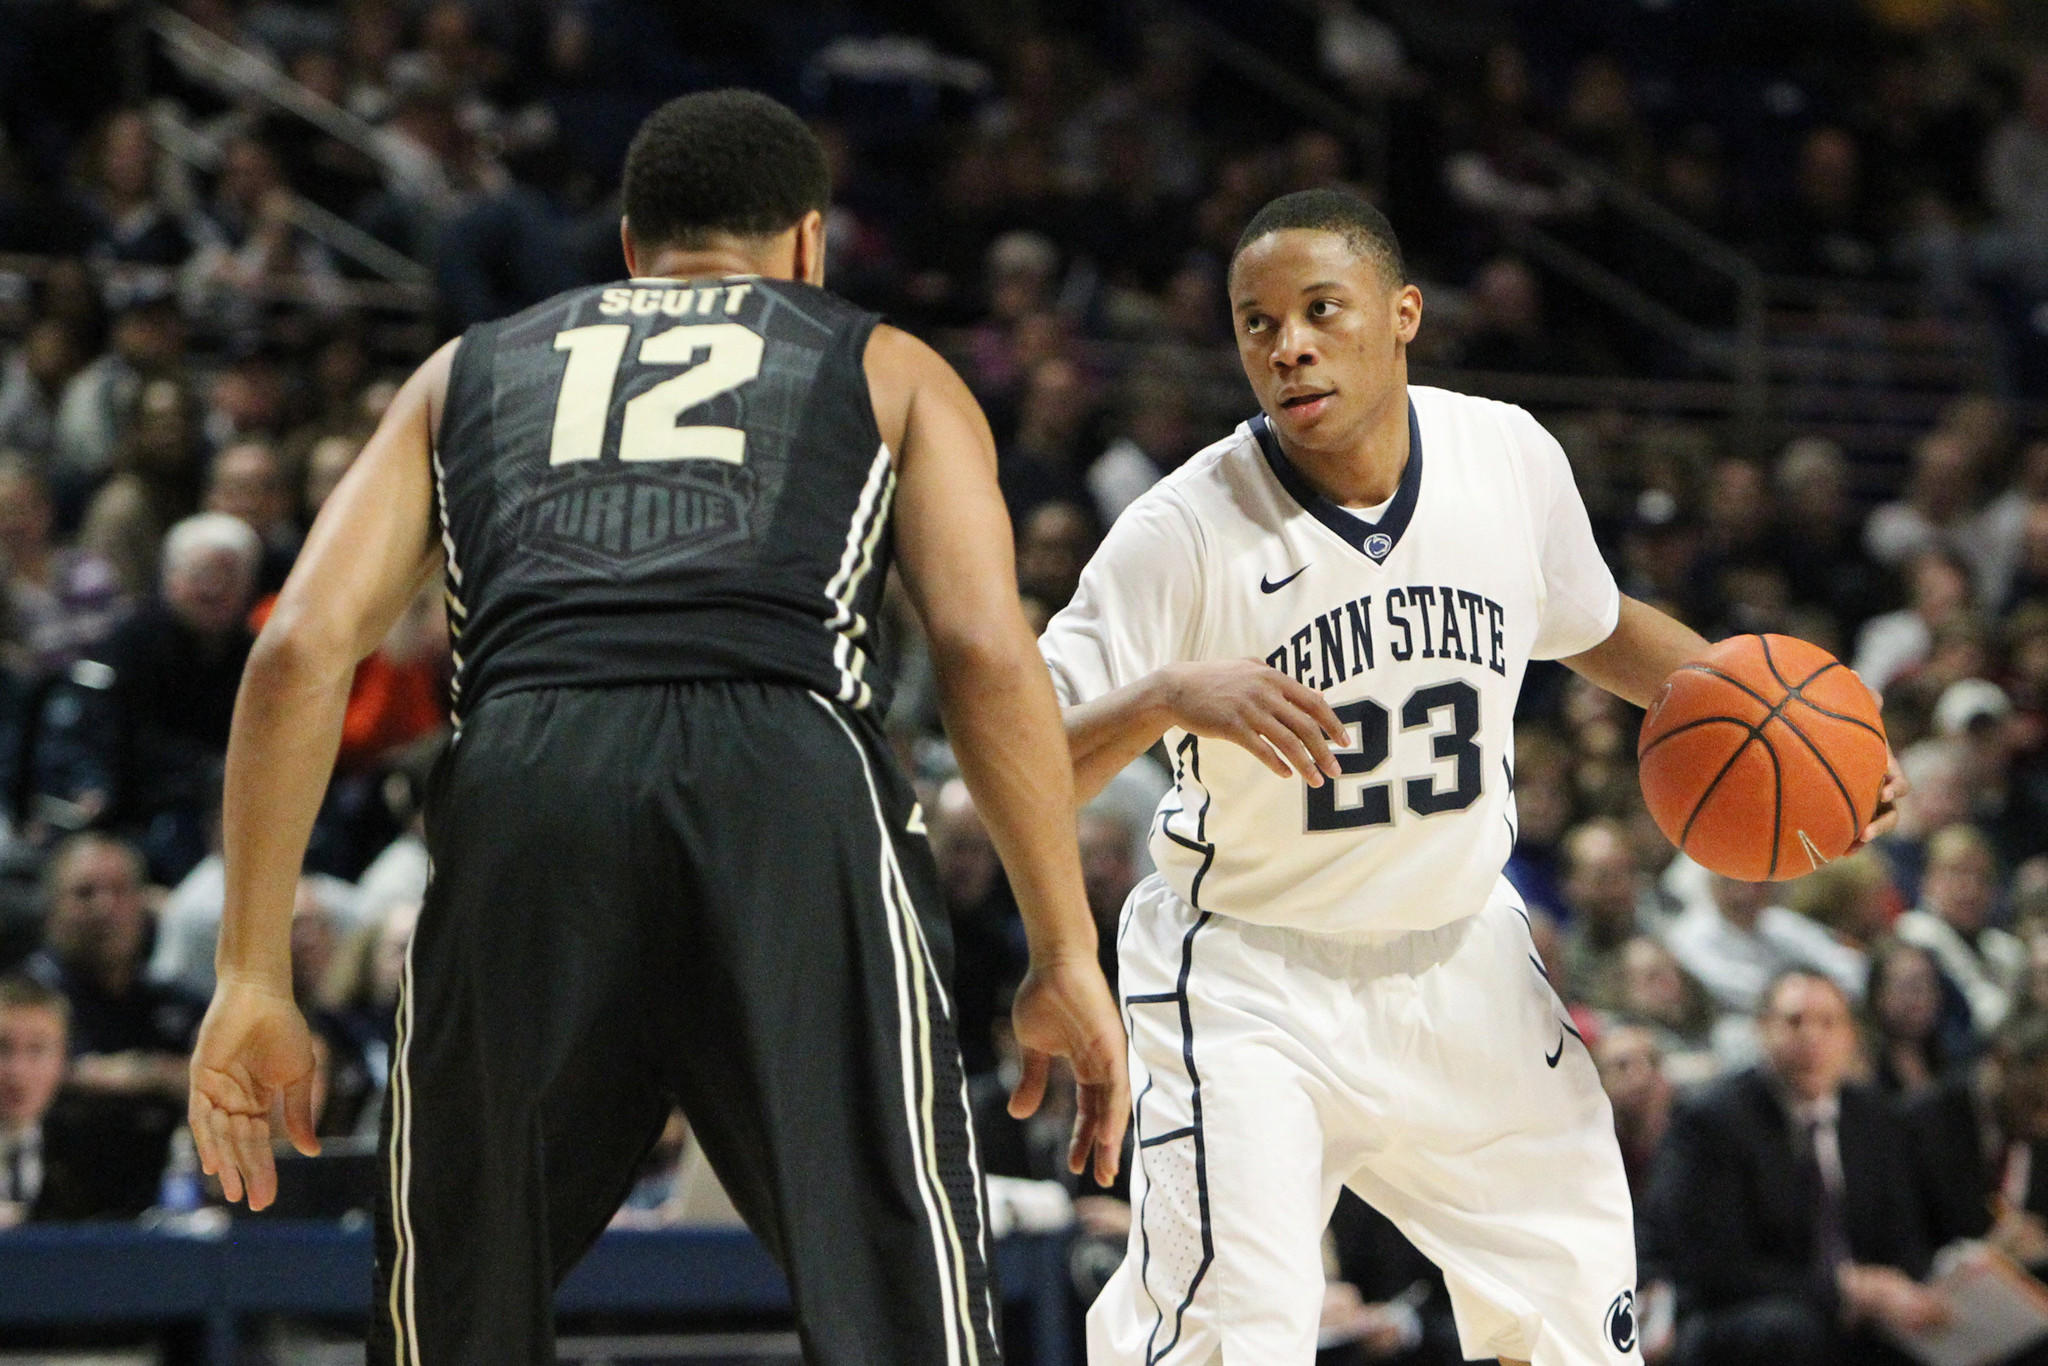 Penn State guard Tim Frazier signals as Purdue guard Bryson Scott awaits.